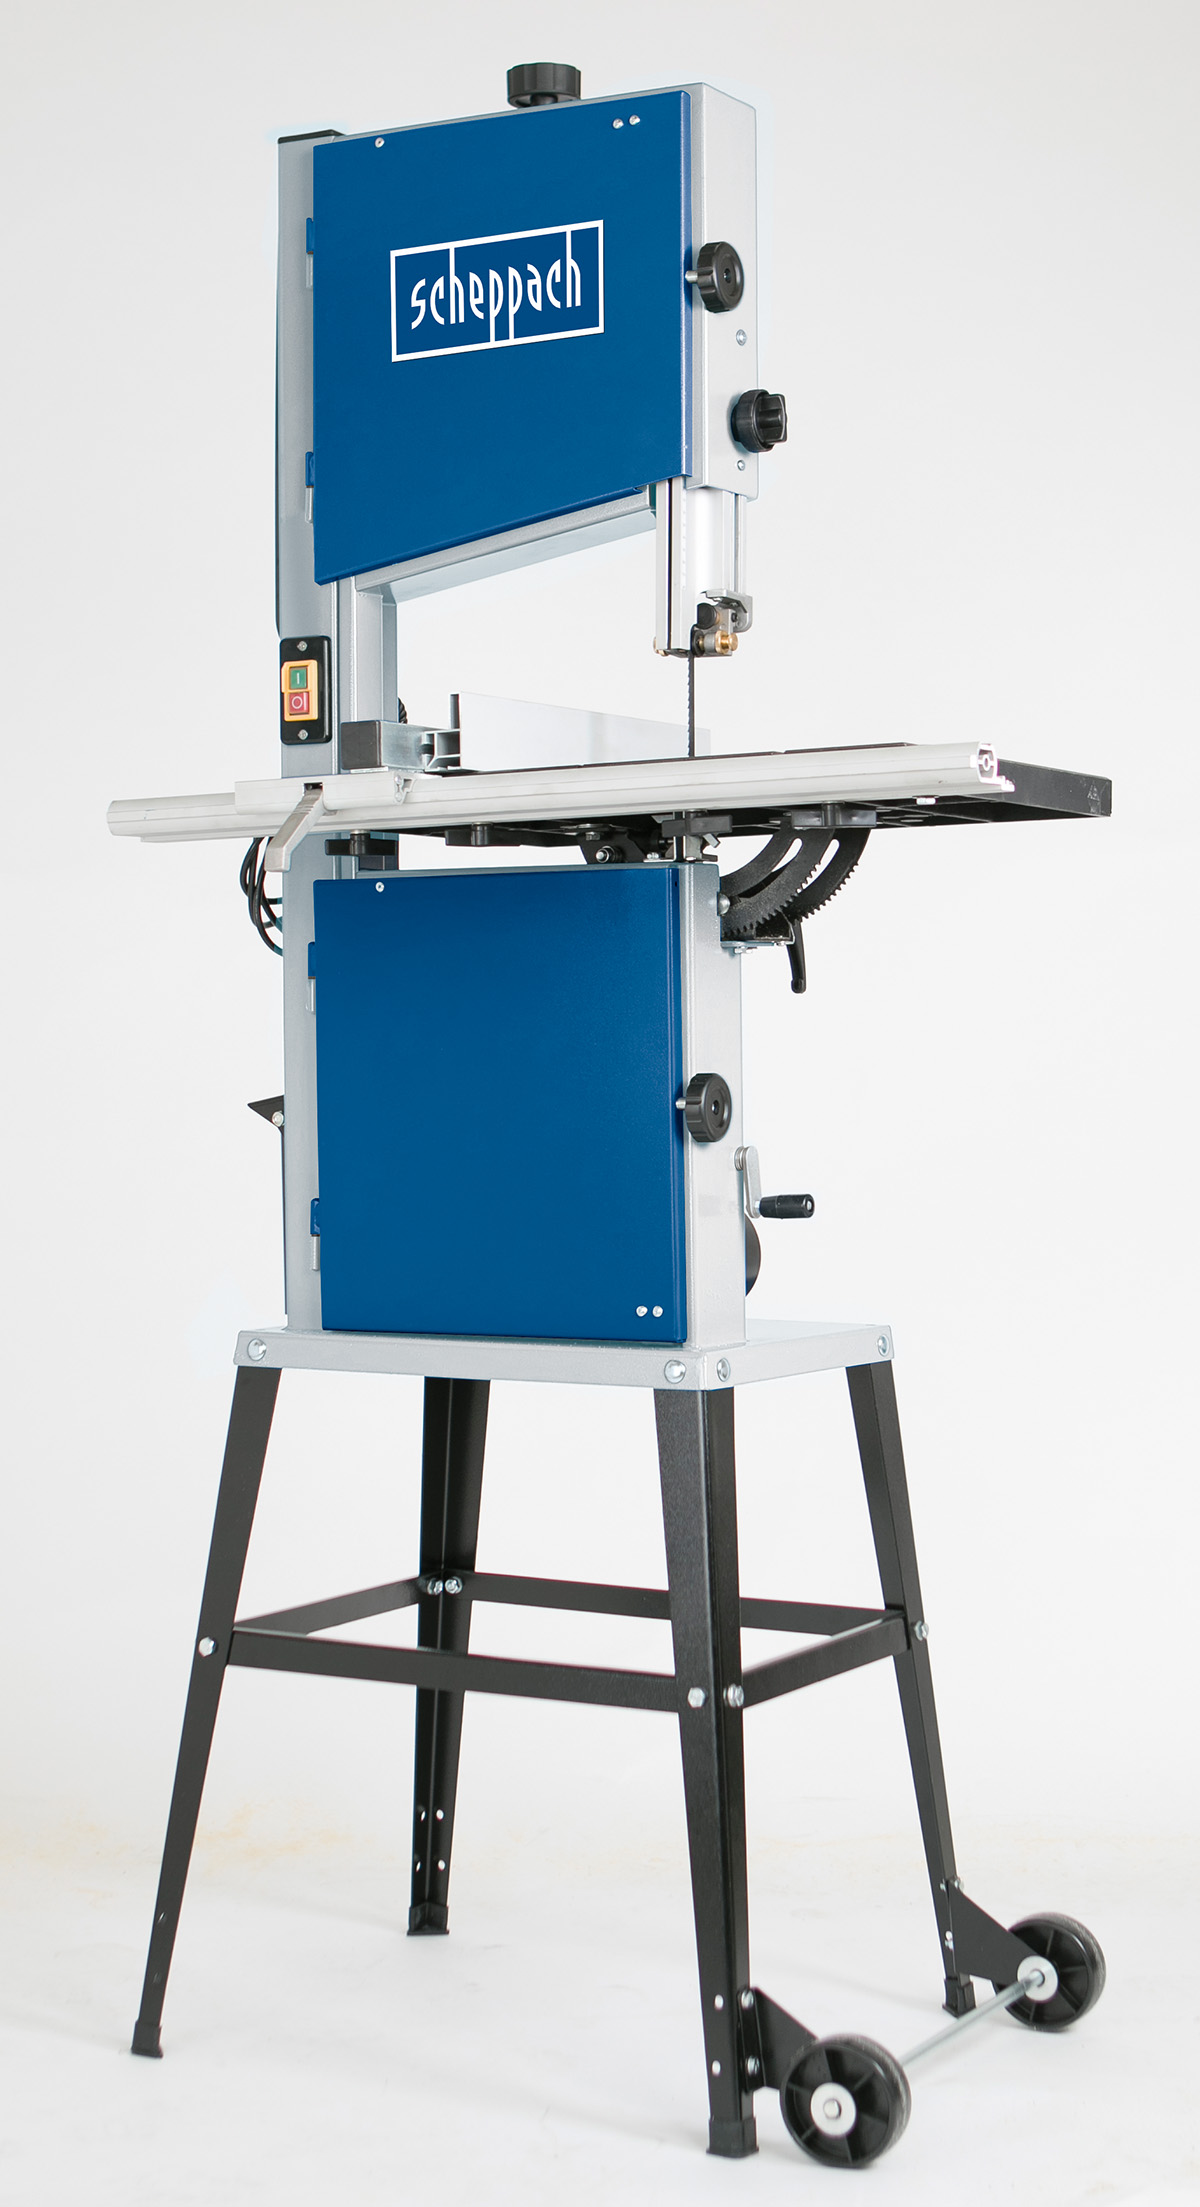 Hbs300 12 band saw scheppach direct for 12 inch table saw for sale